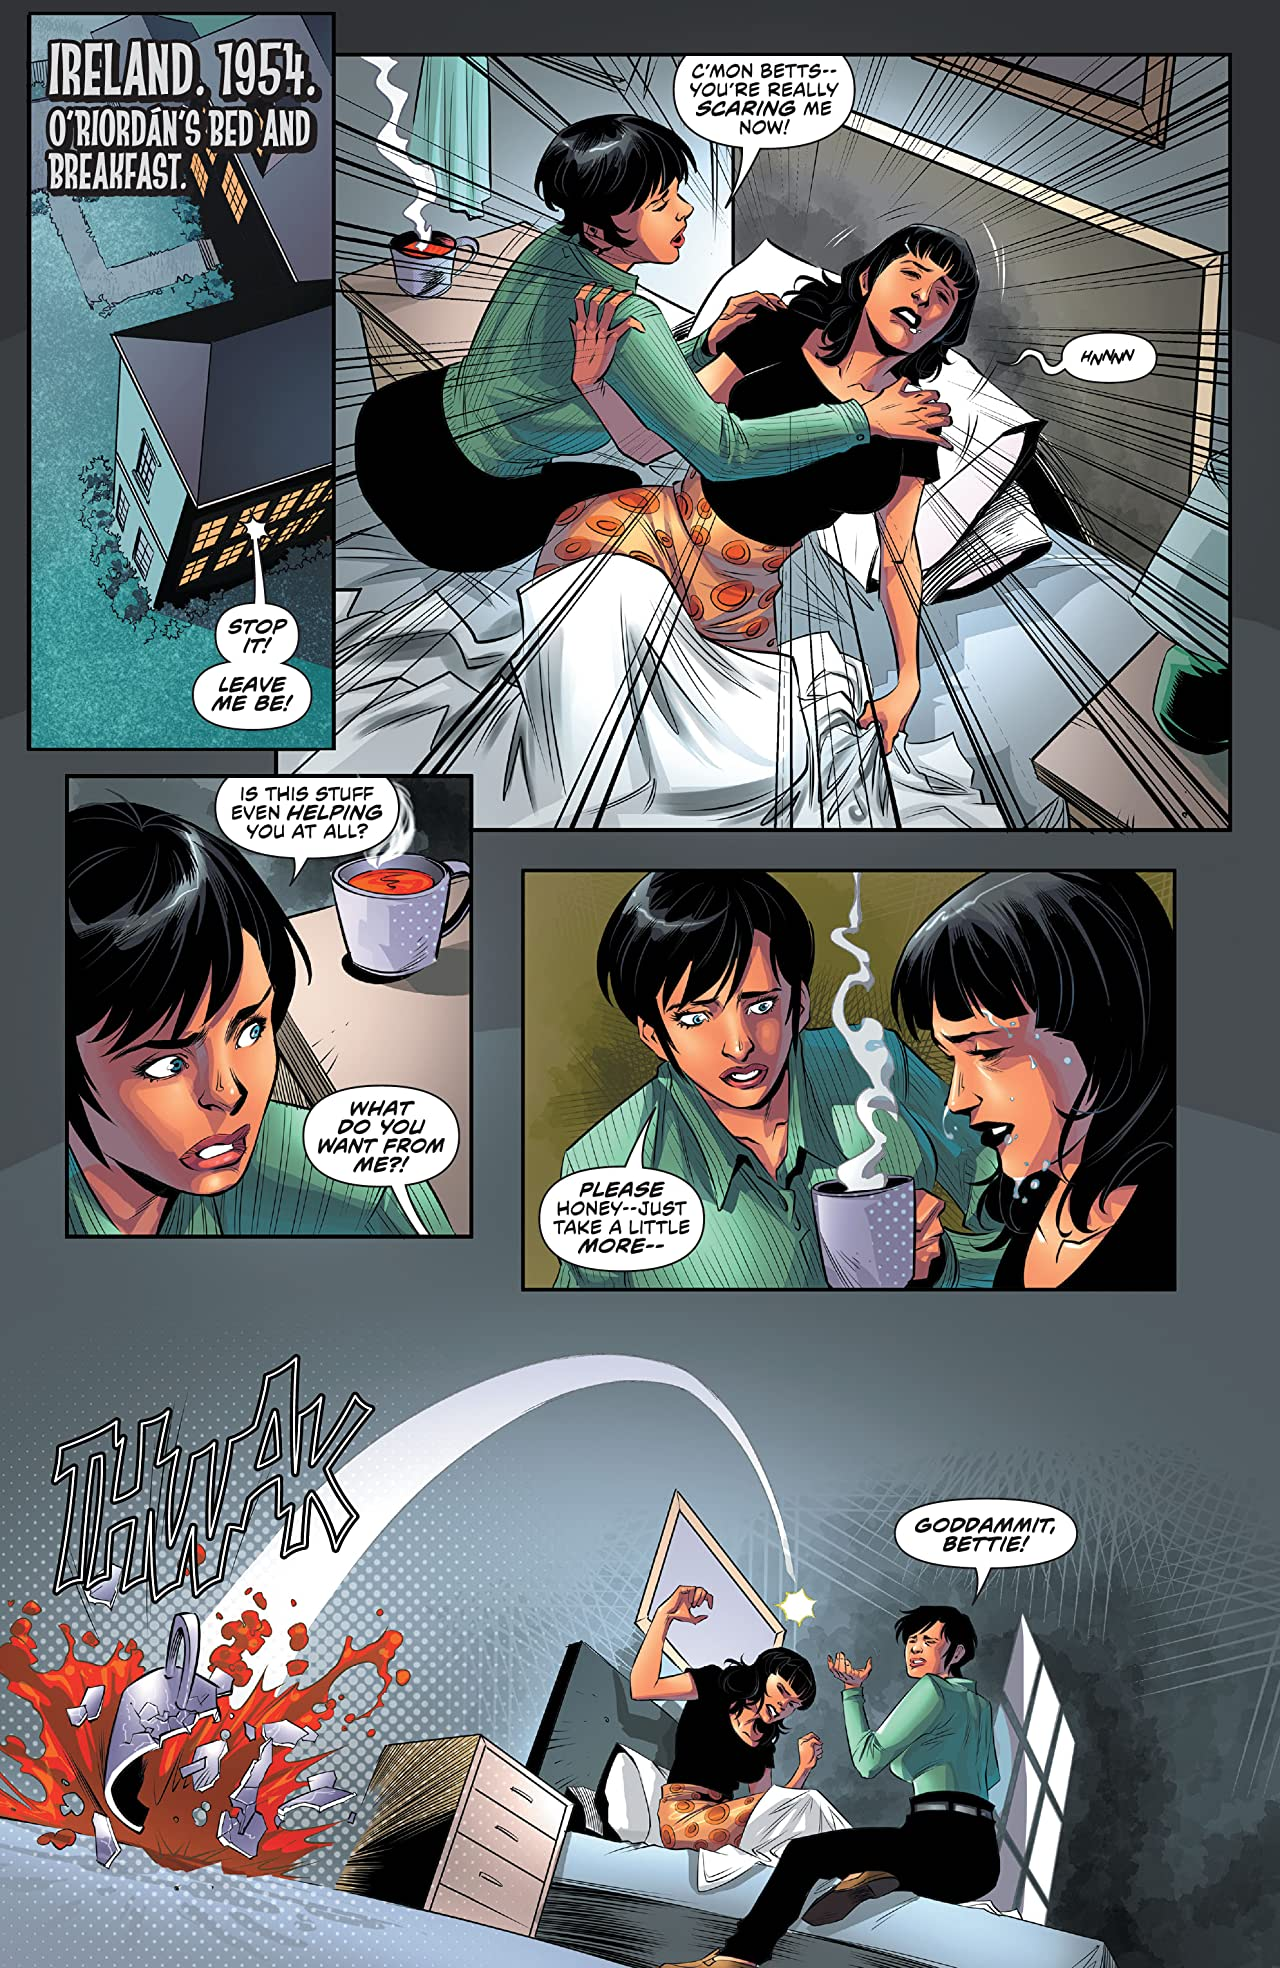 Bettie Page & The Curse of the Banshee #4